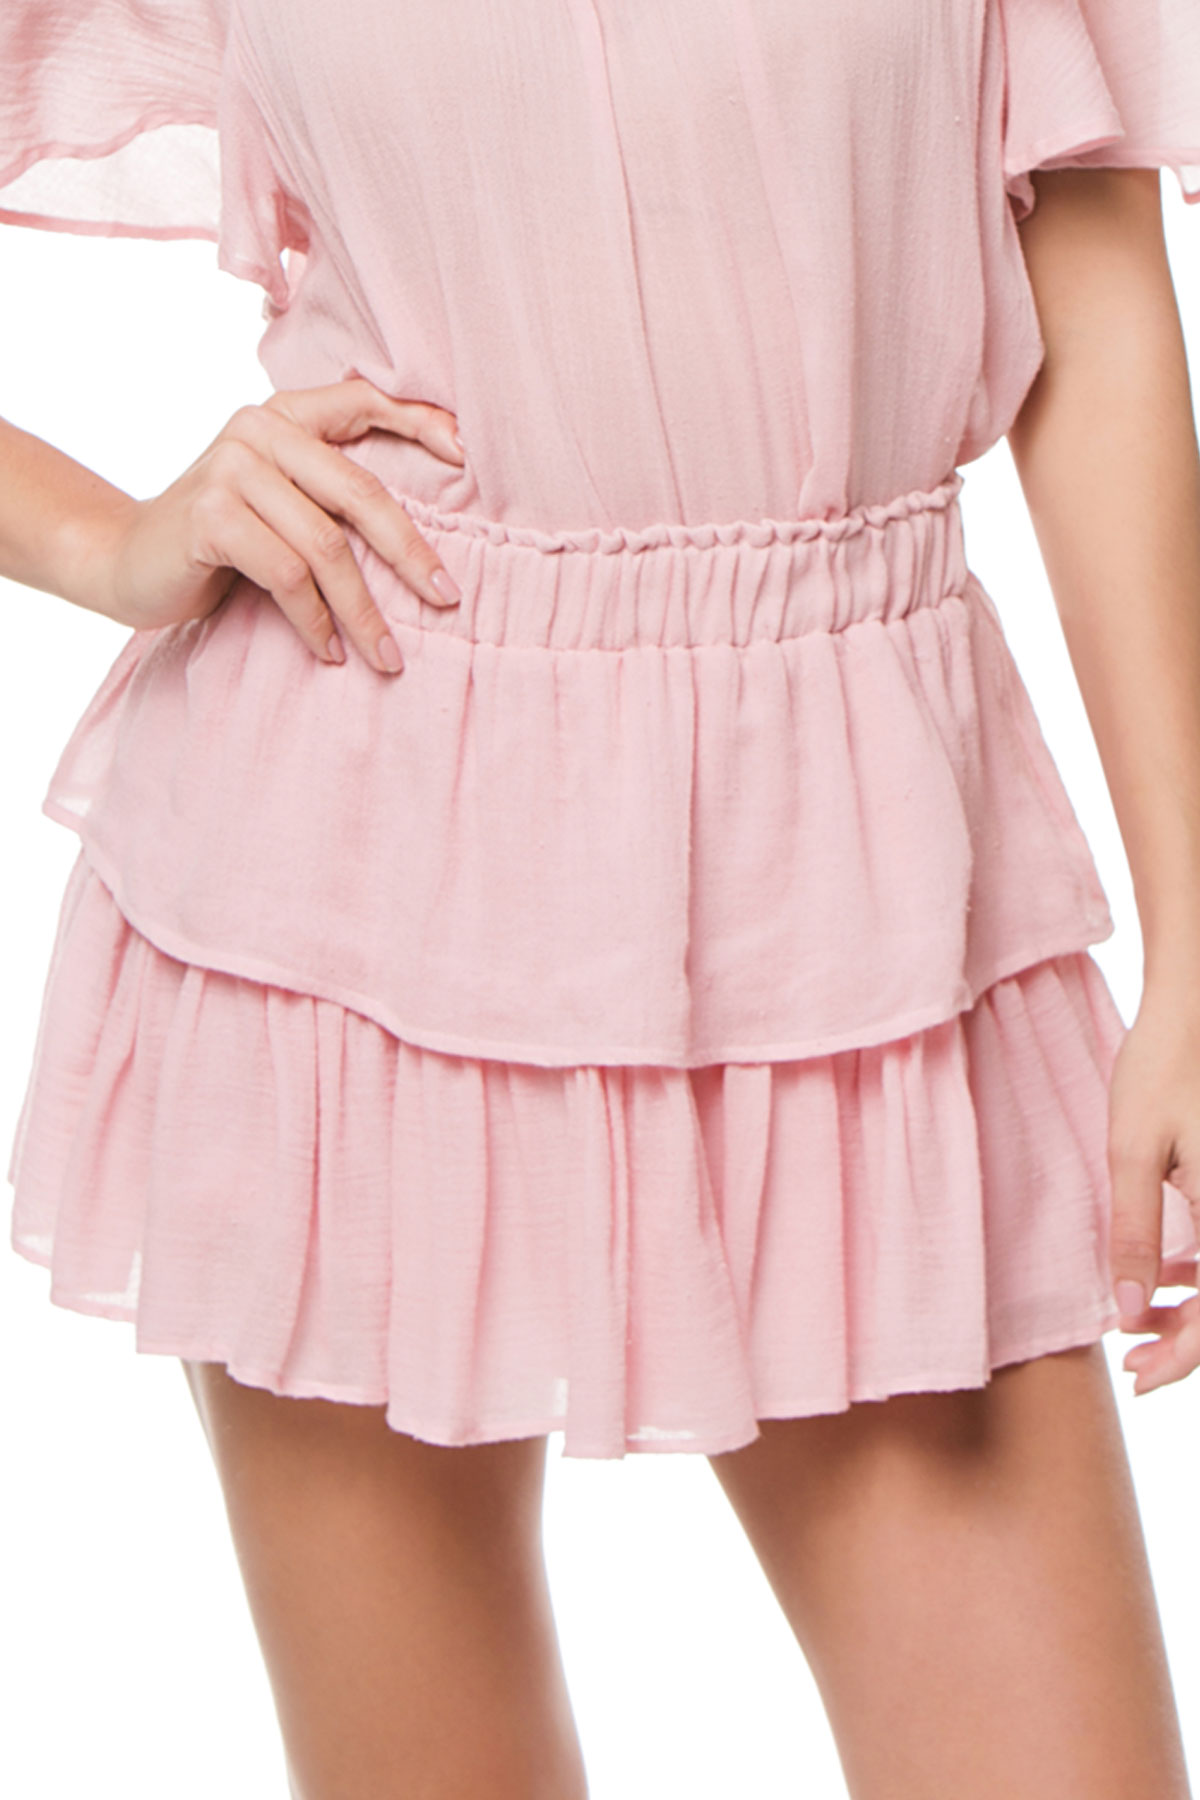 Tiered Ruffle Skirt - Silver Pink